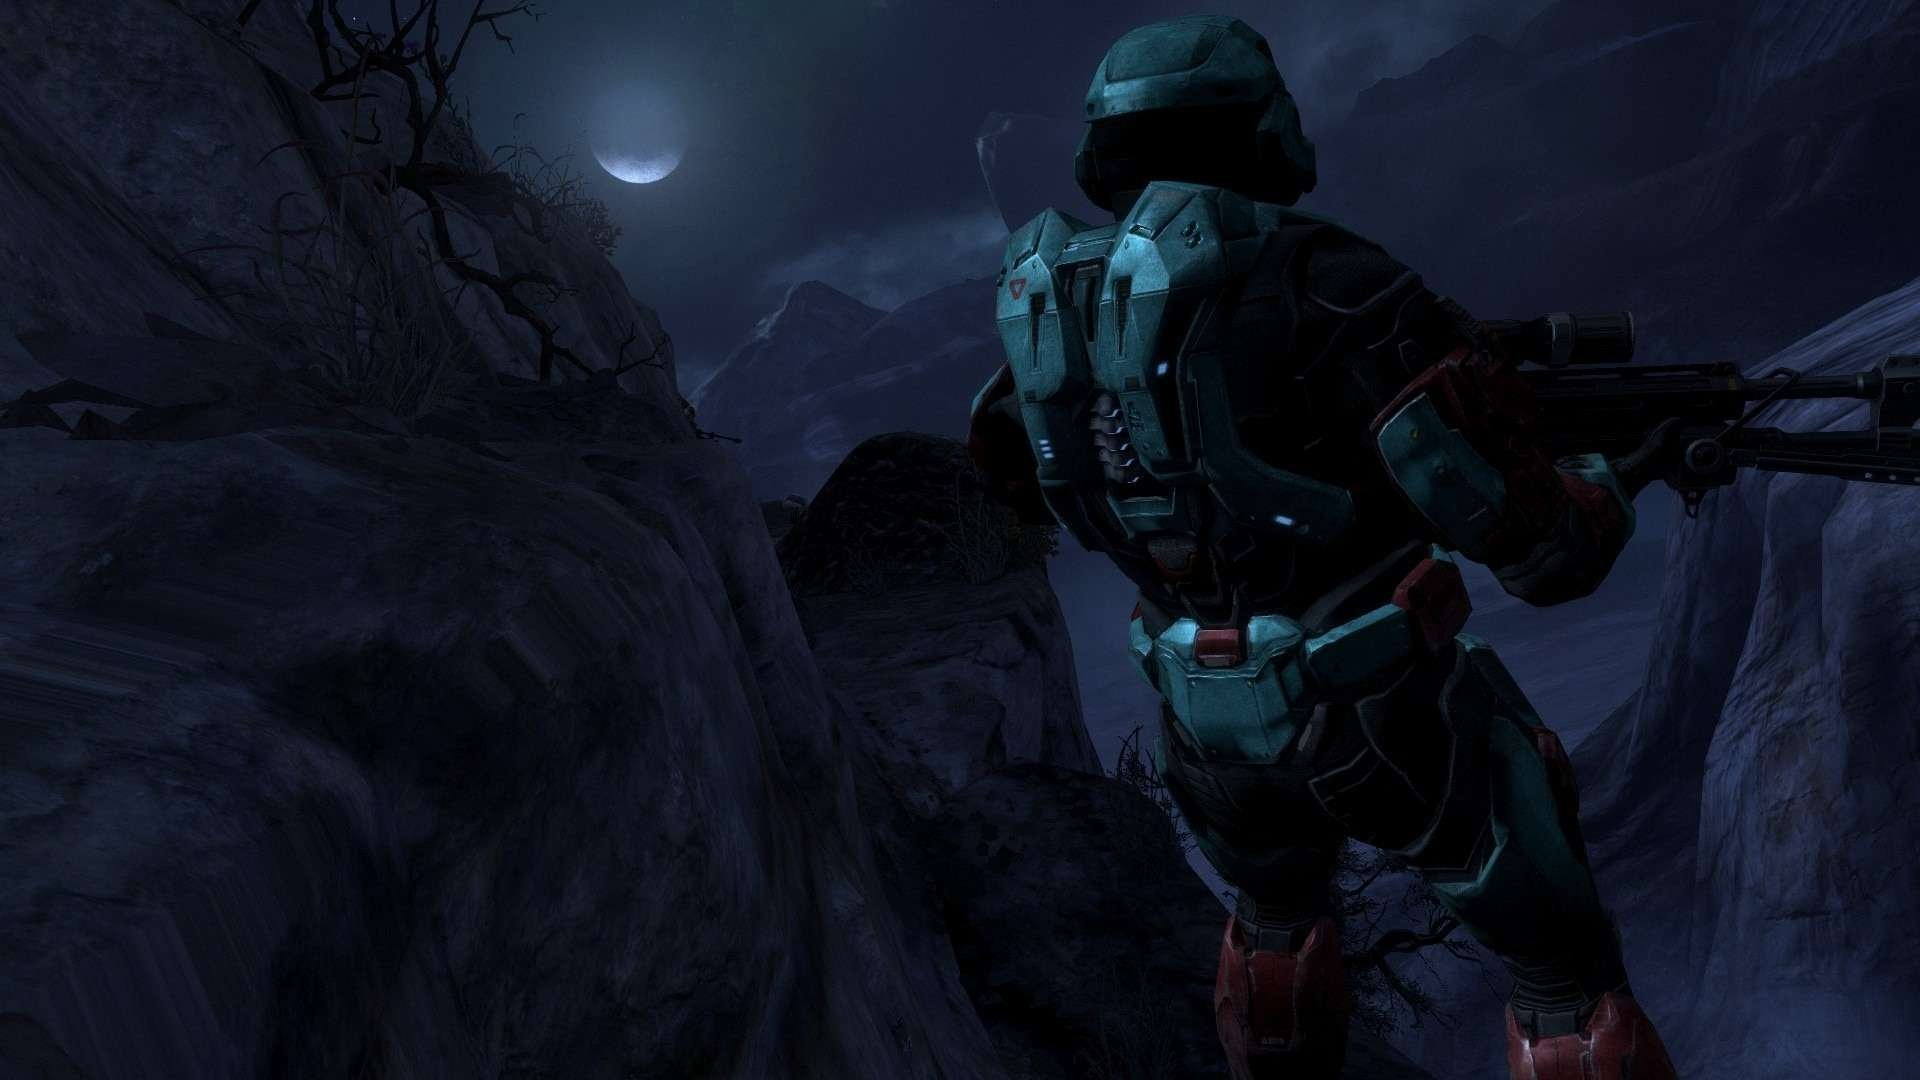 Halo The Master Chief Collection Full Achievement Guide